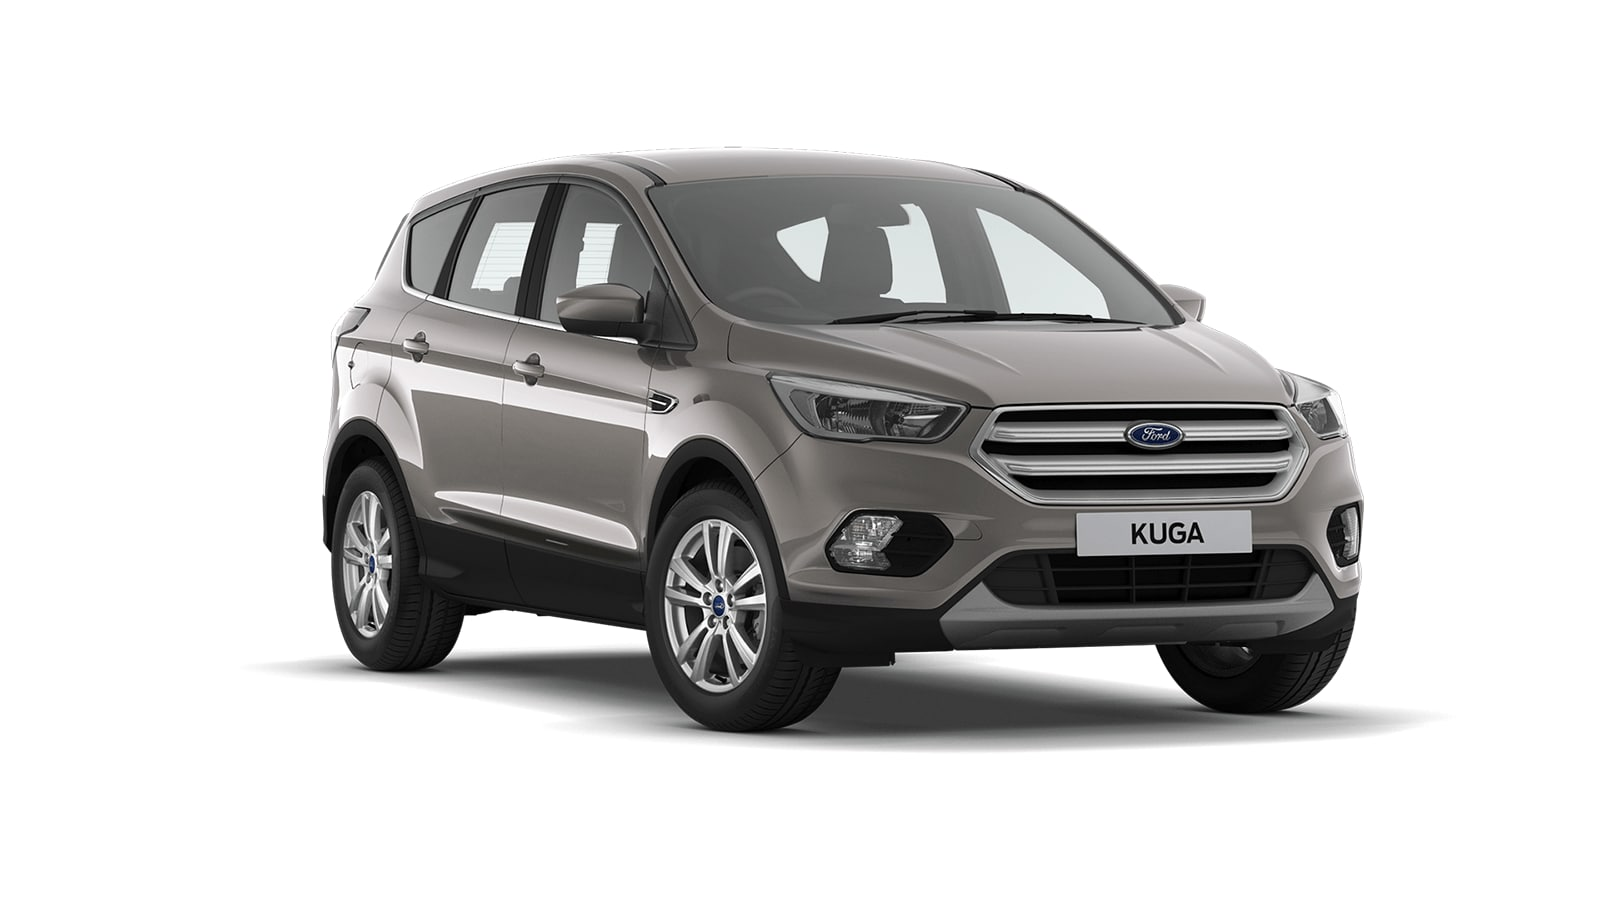 KUGA Zetec 5 Door in Diffused Silver